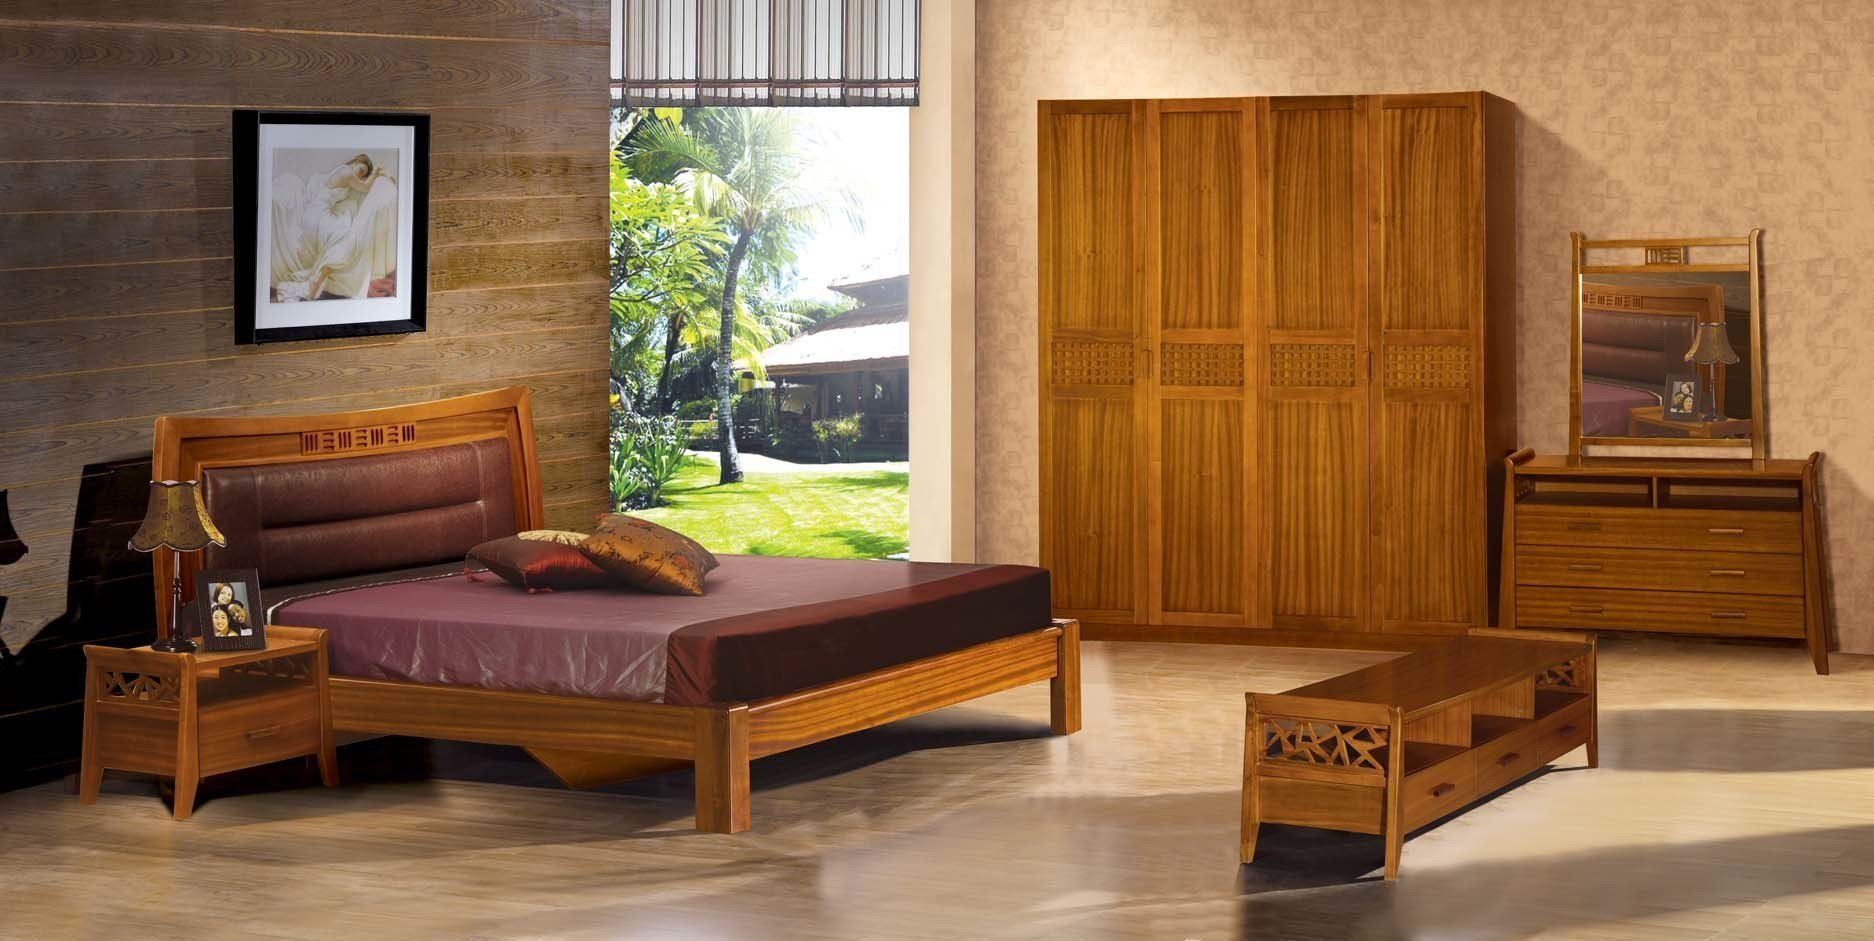 Best Gothic Wood Furniture Bedroom Set Home Decorating Ideas With Pictures